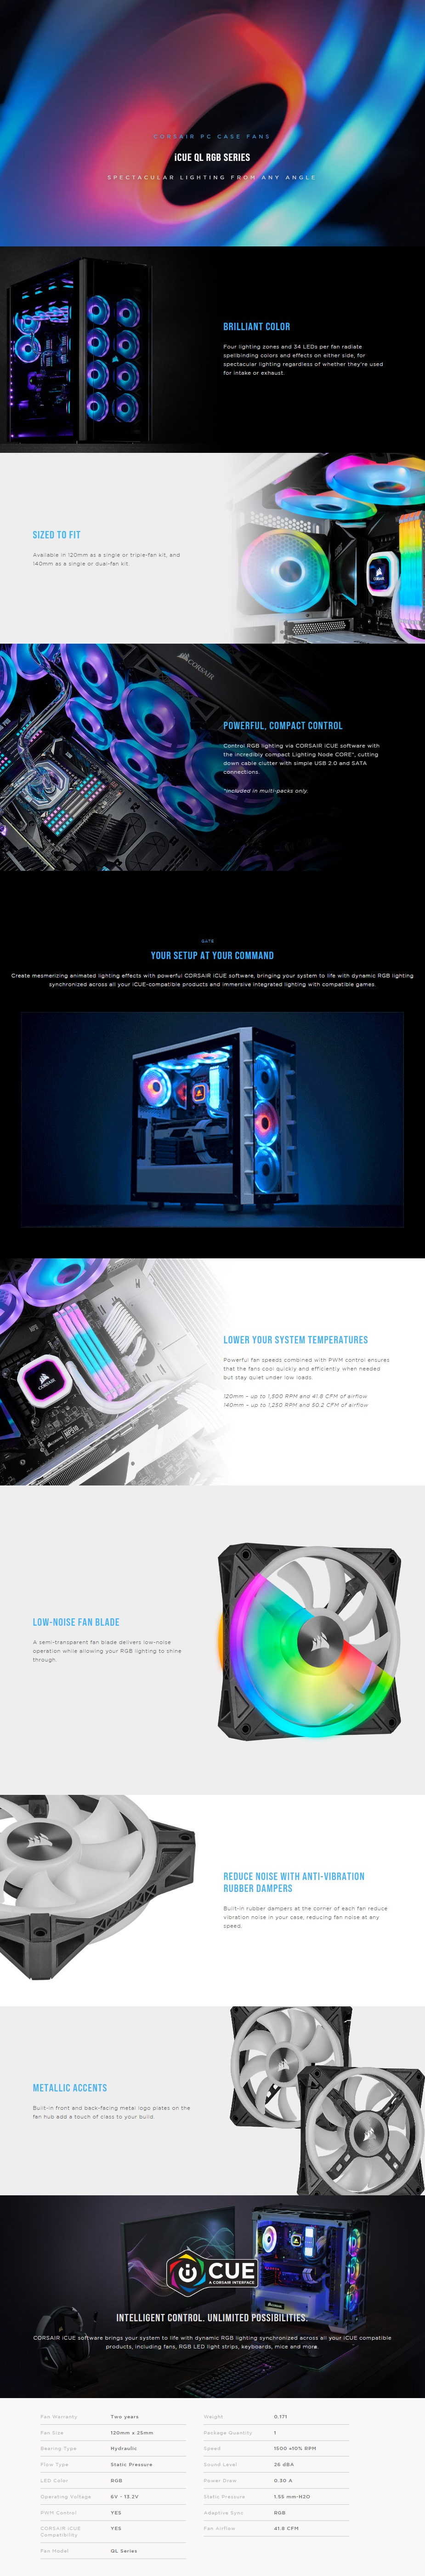 Corsair iCUE QL120 RGB 120mm PWM Fan - Three Pack with Lighting Node CORE - Overview 1